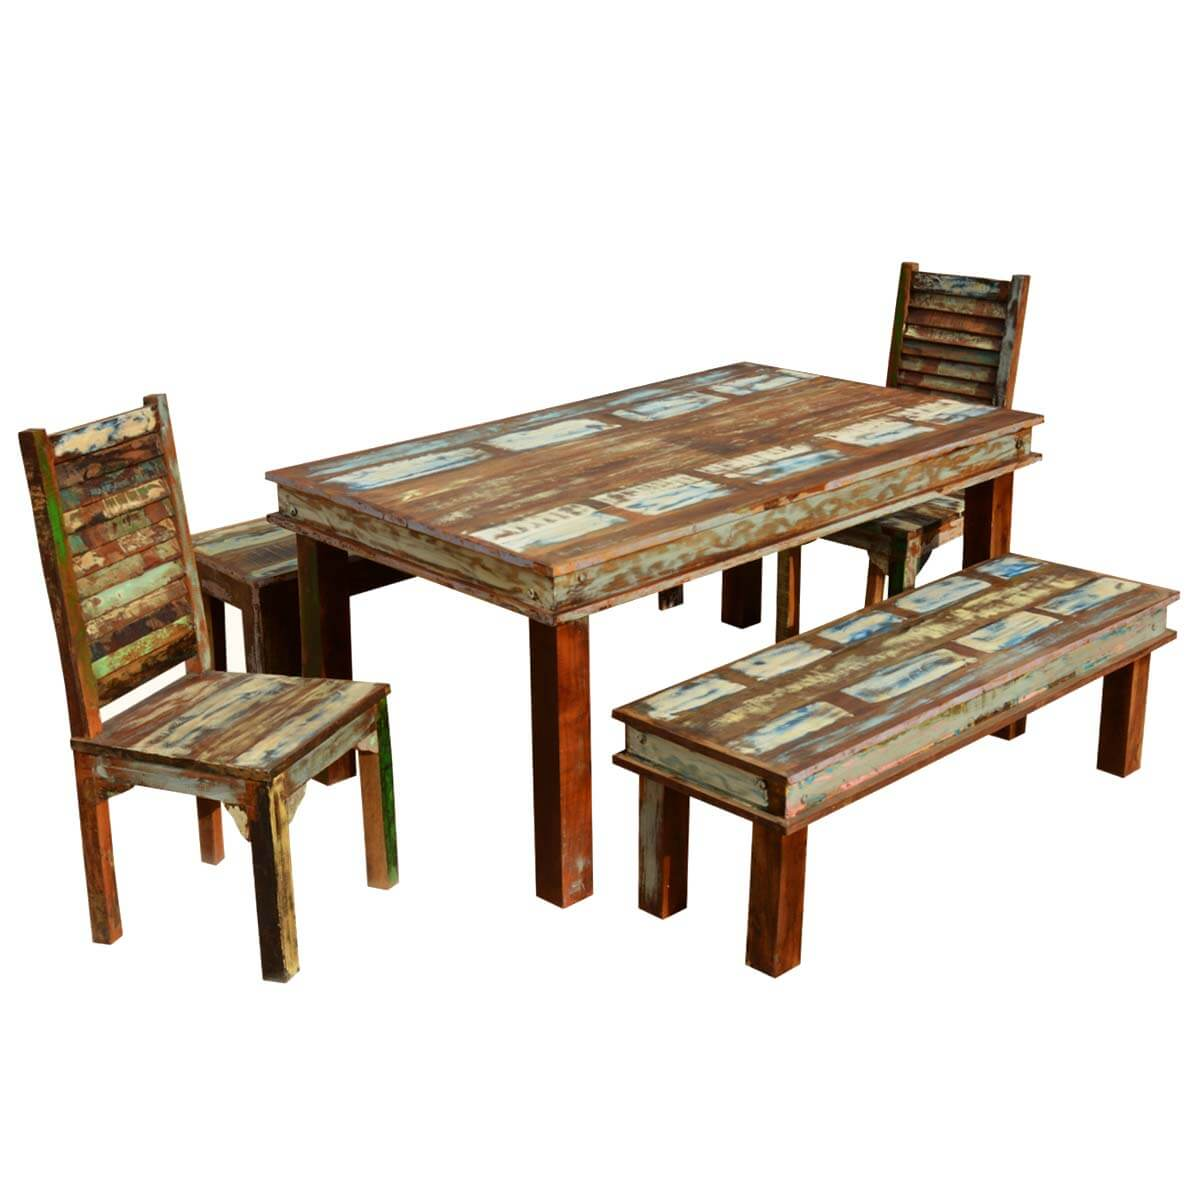 Sierra Reclaimed Wood Furniture Dining Table With 2 Chairs 2 Benches